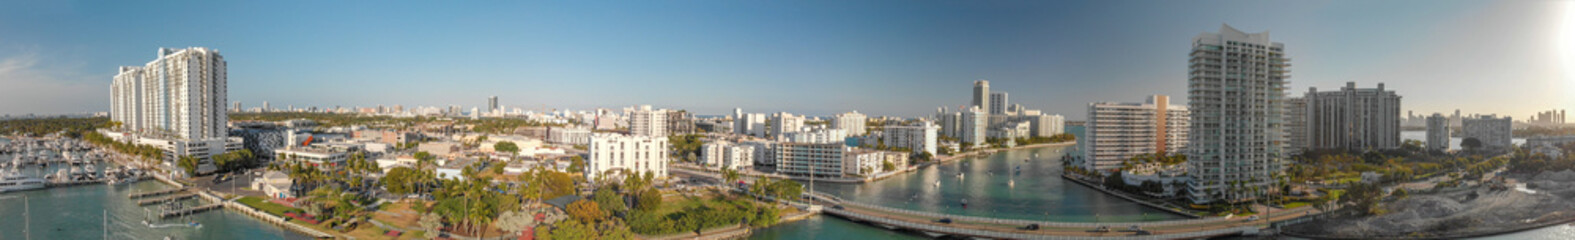 Panoramic aerial view of Miami Beach and Venetian Way on a beautiful afternoon